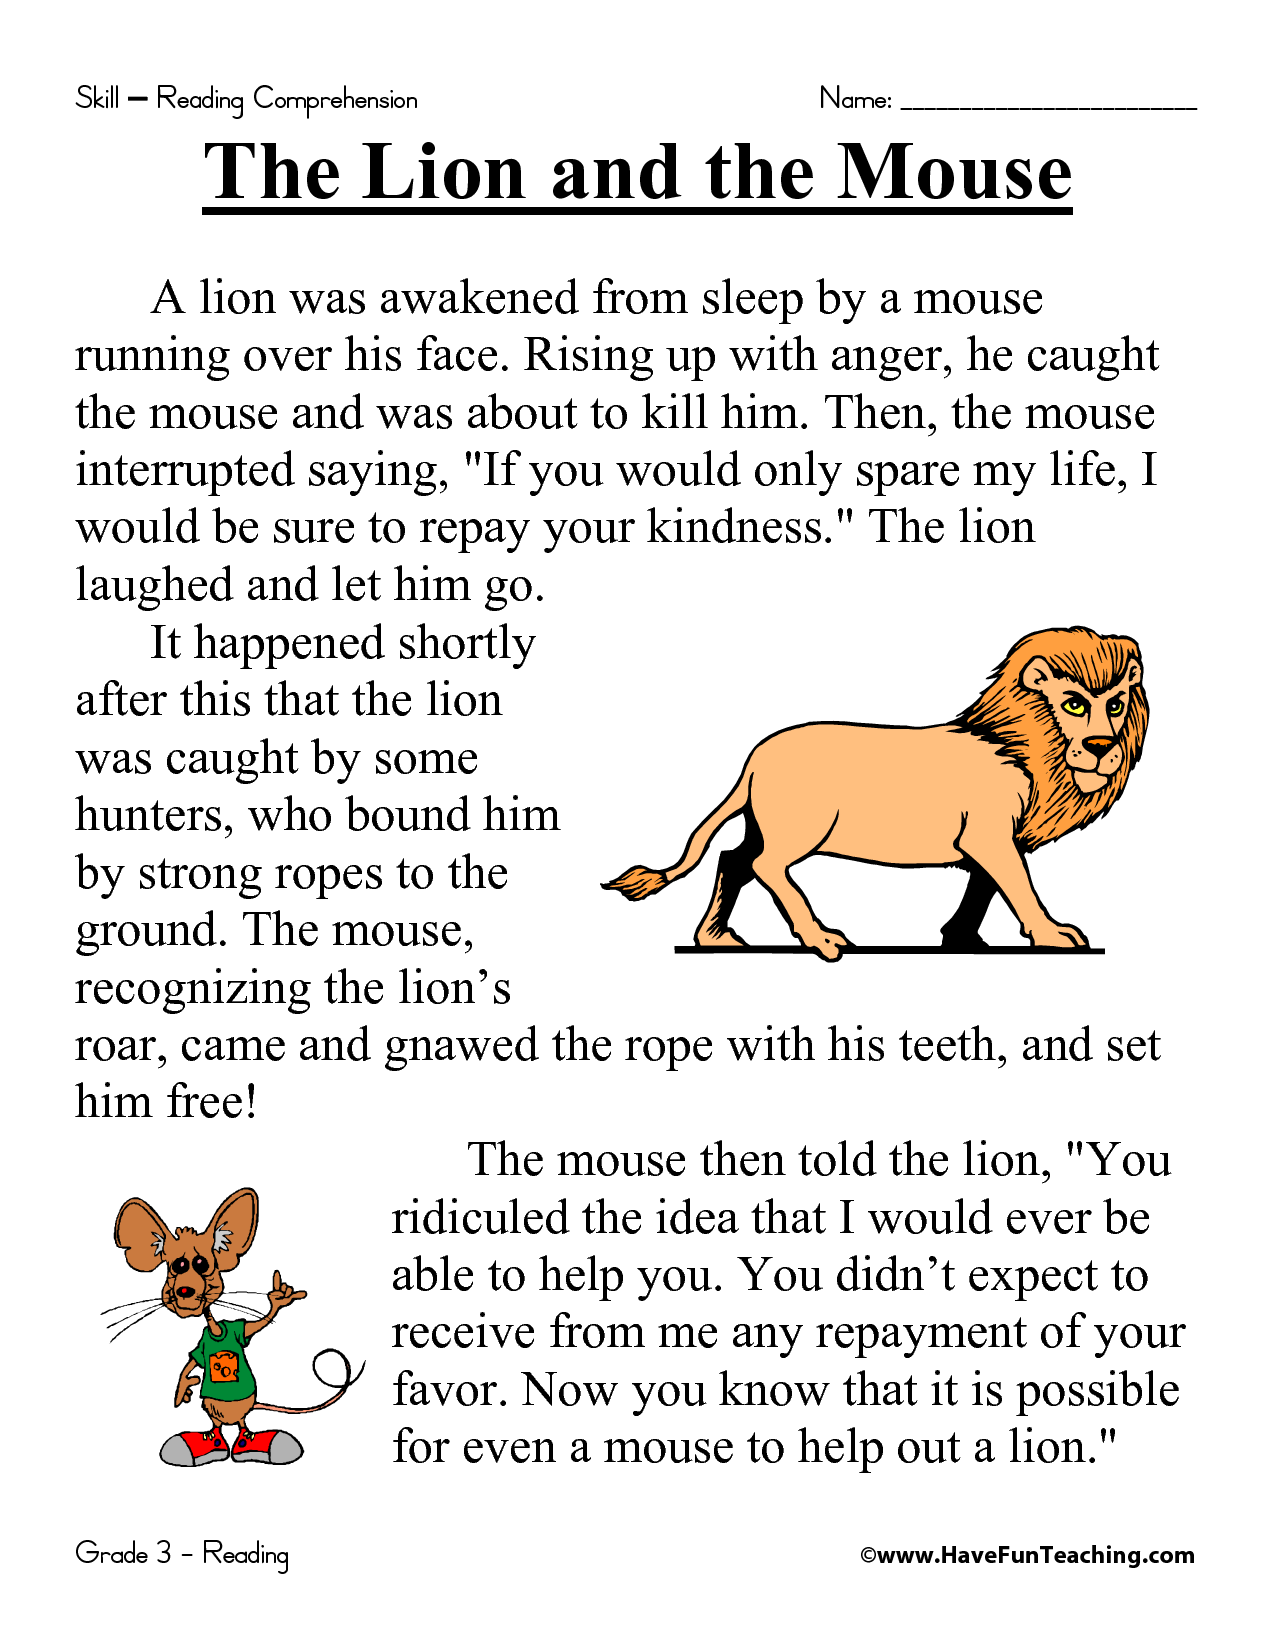 Worksheet Reading Exercises For 3rd Graders printable reading comprehension worksheets inc exercises for first grade the lion and mouse worksheet